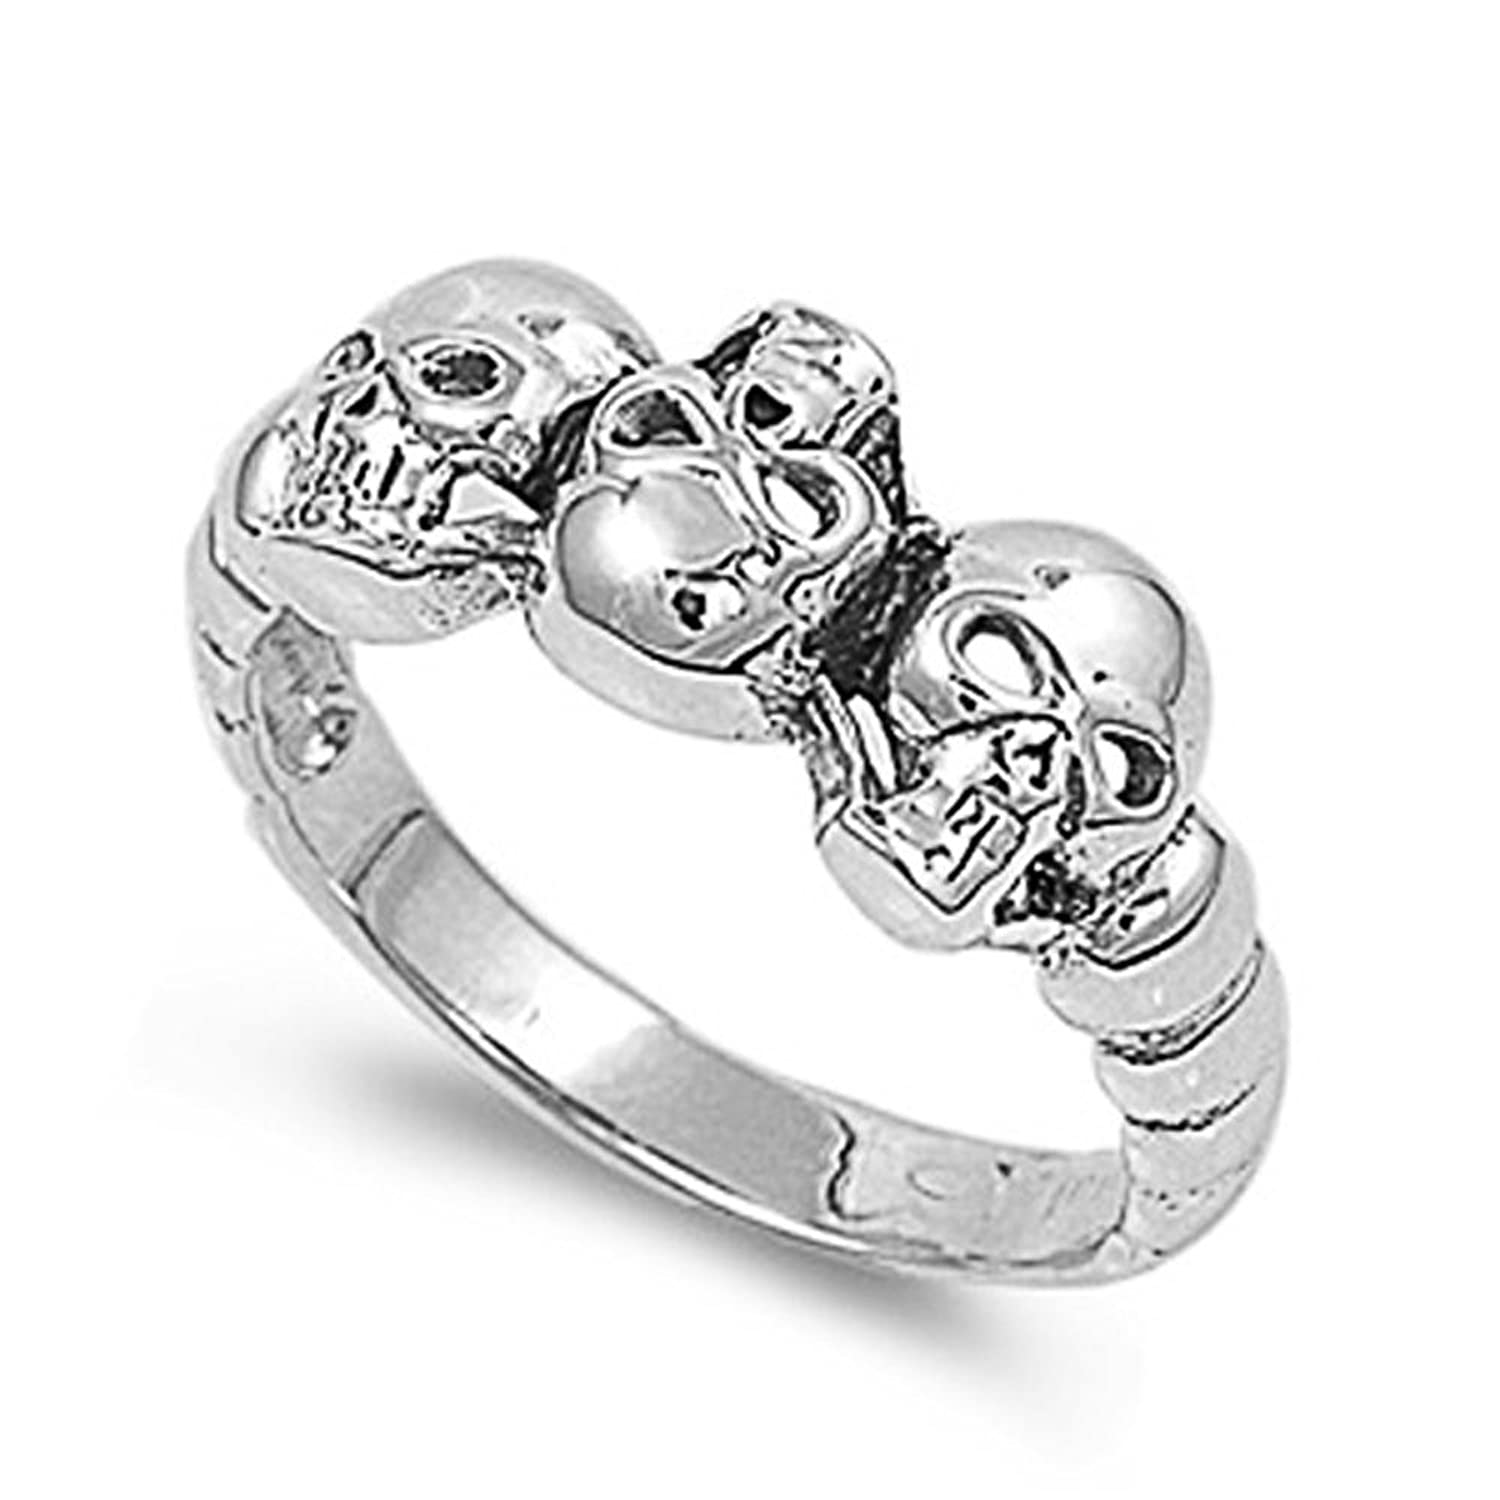 Sterling Silver Wedding Engagement Ring Skulls Wedding Band Ring